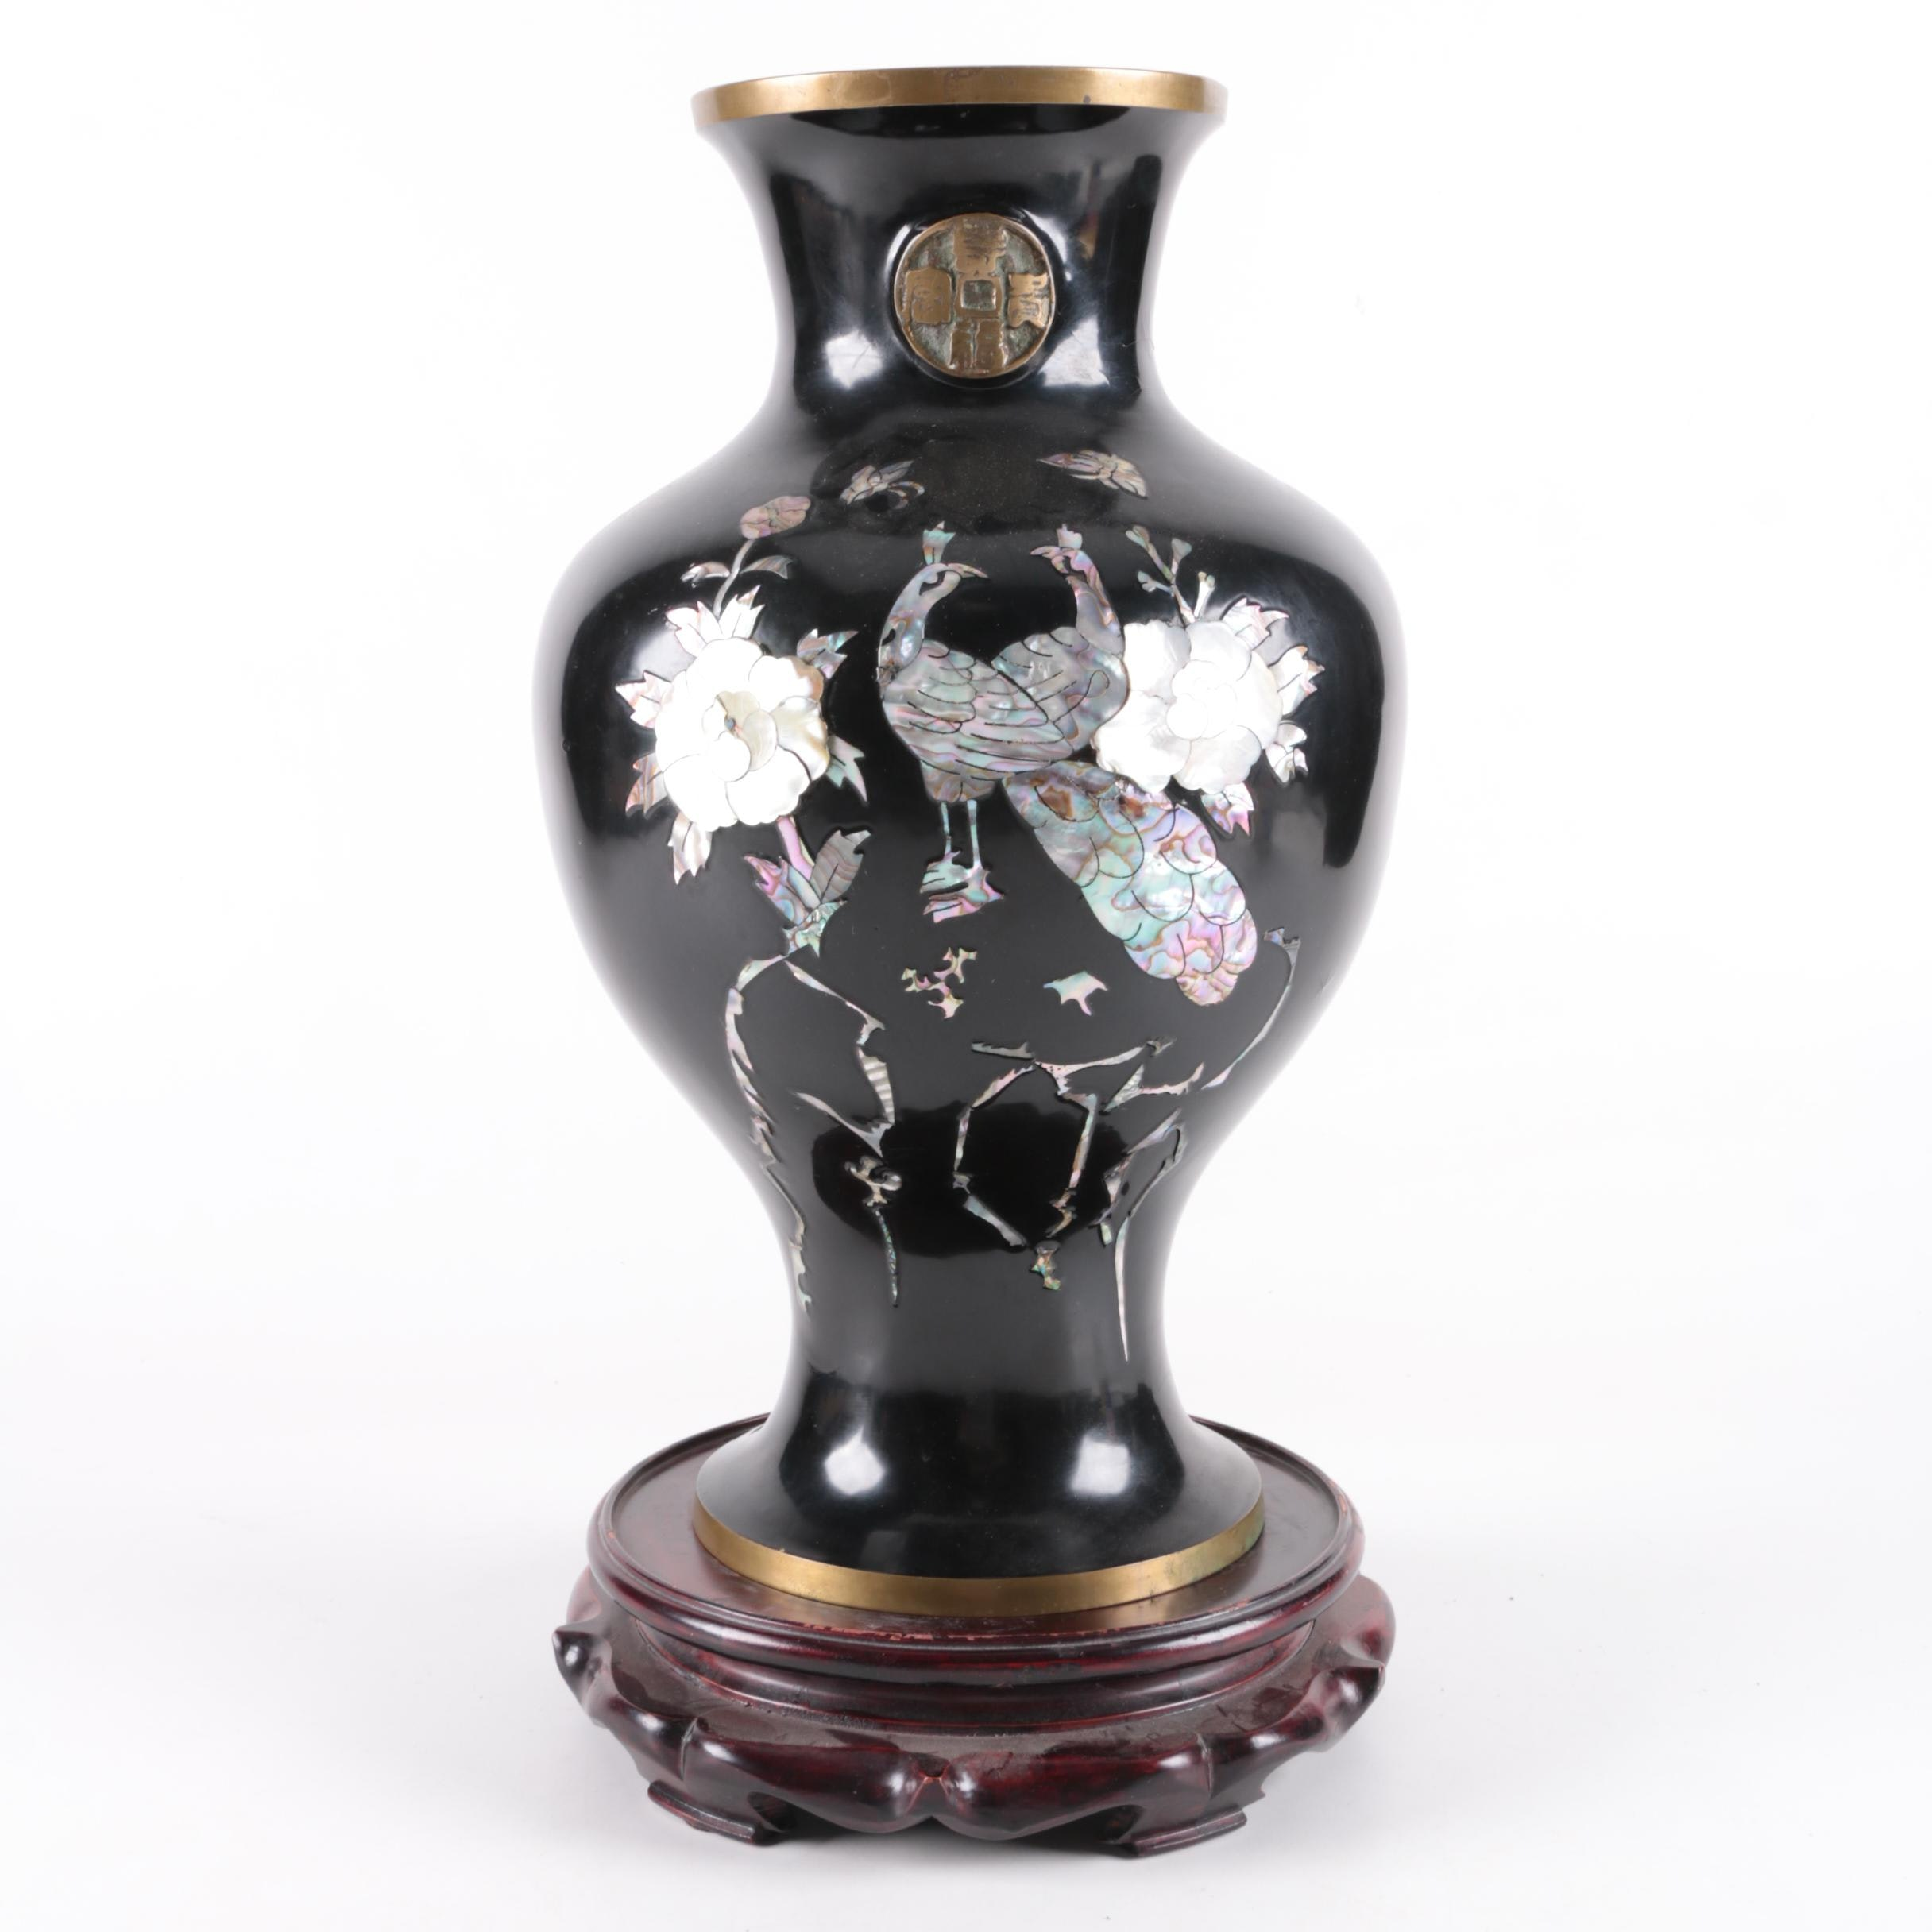 Chinese Enamel on Brass Vase with Mother of Pearl and Abalone Inlay